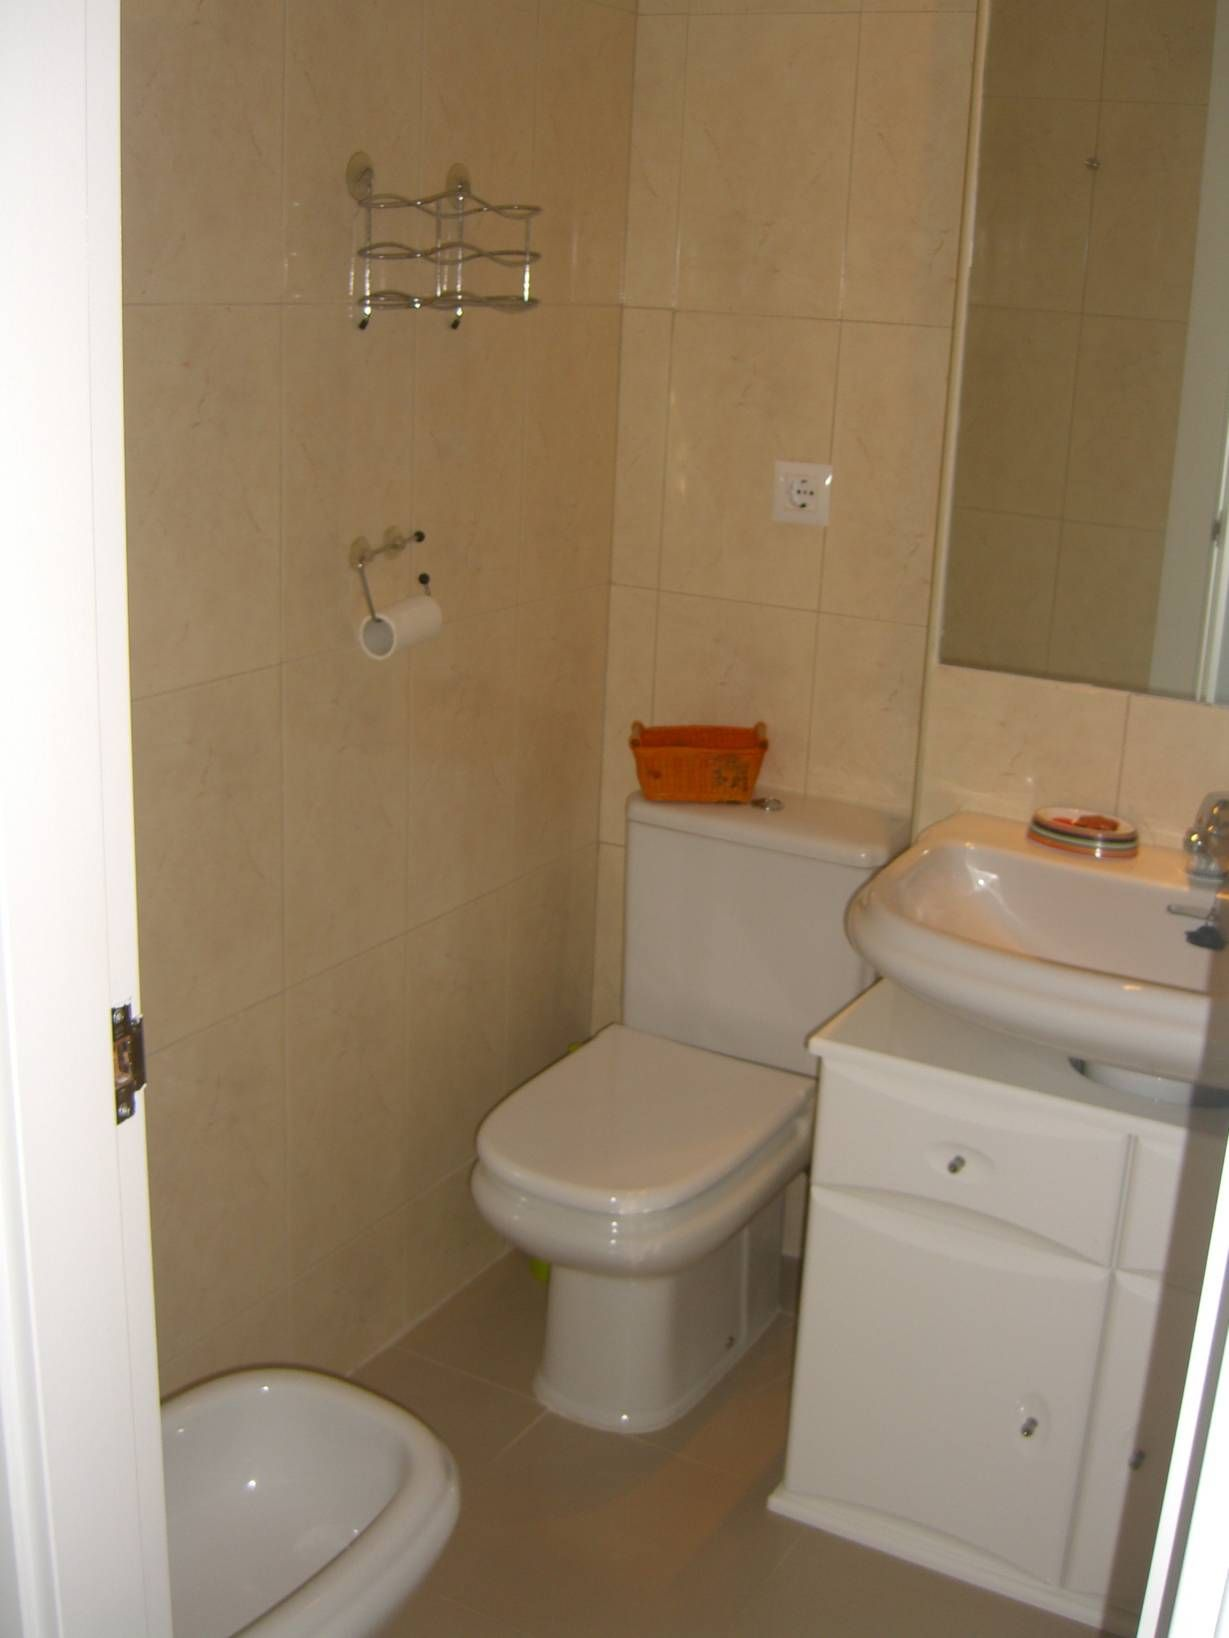 Propery For Sale in Dehesa de Campoamor, Spain image 12